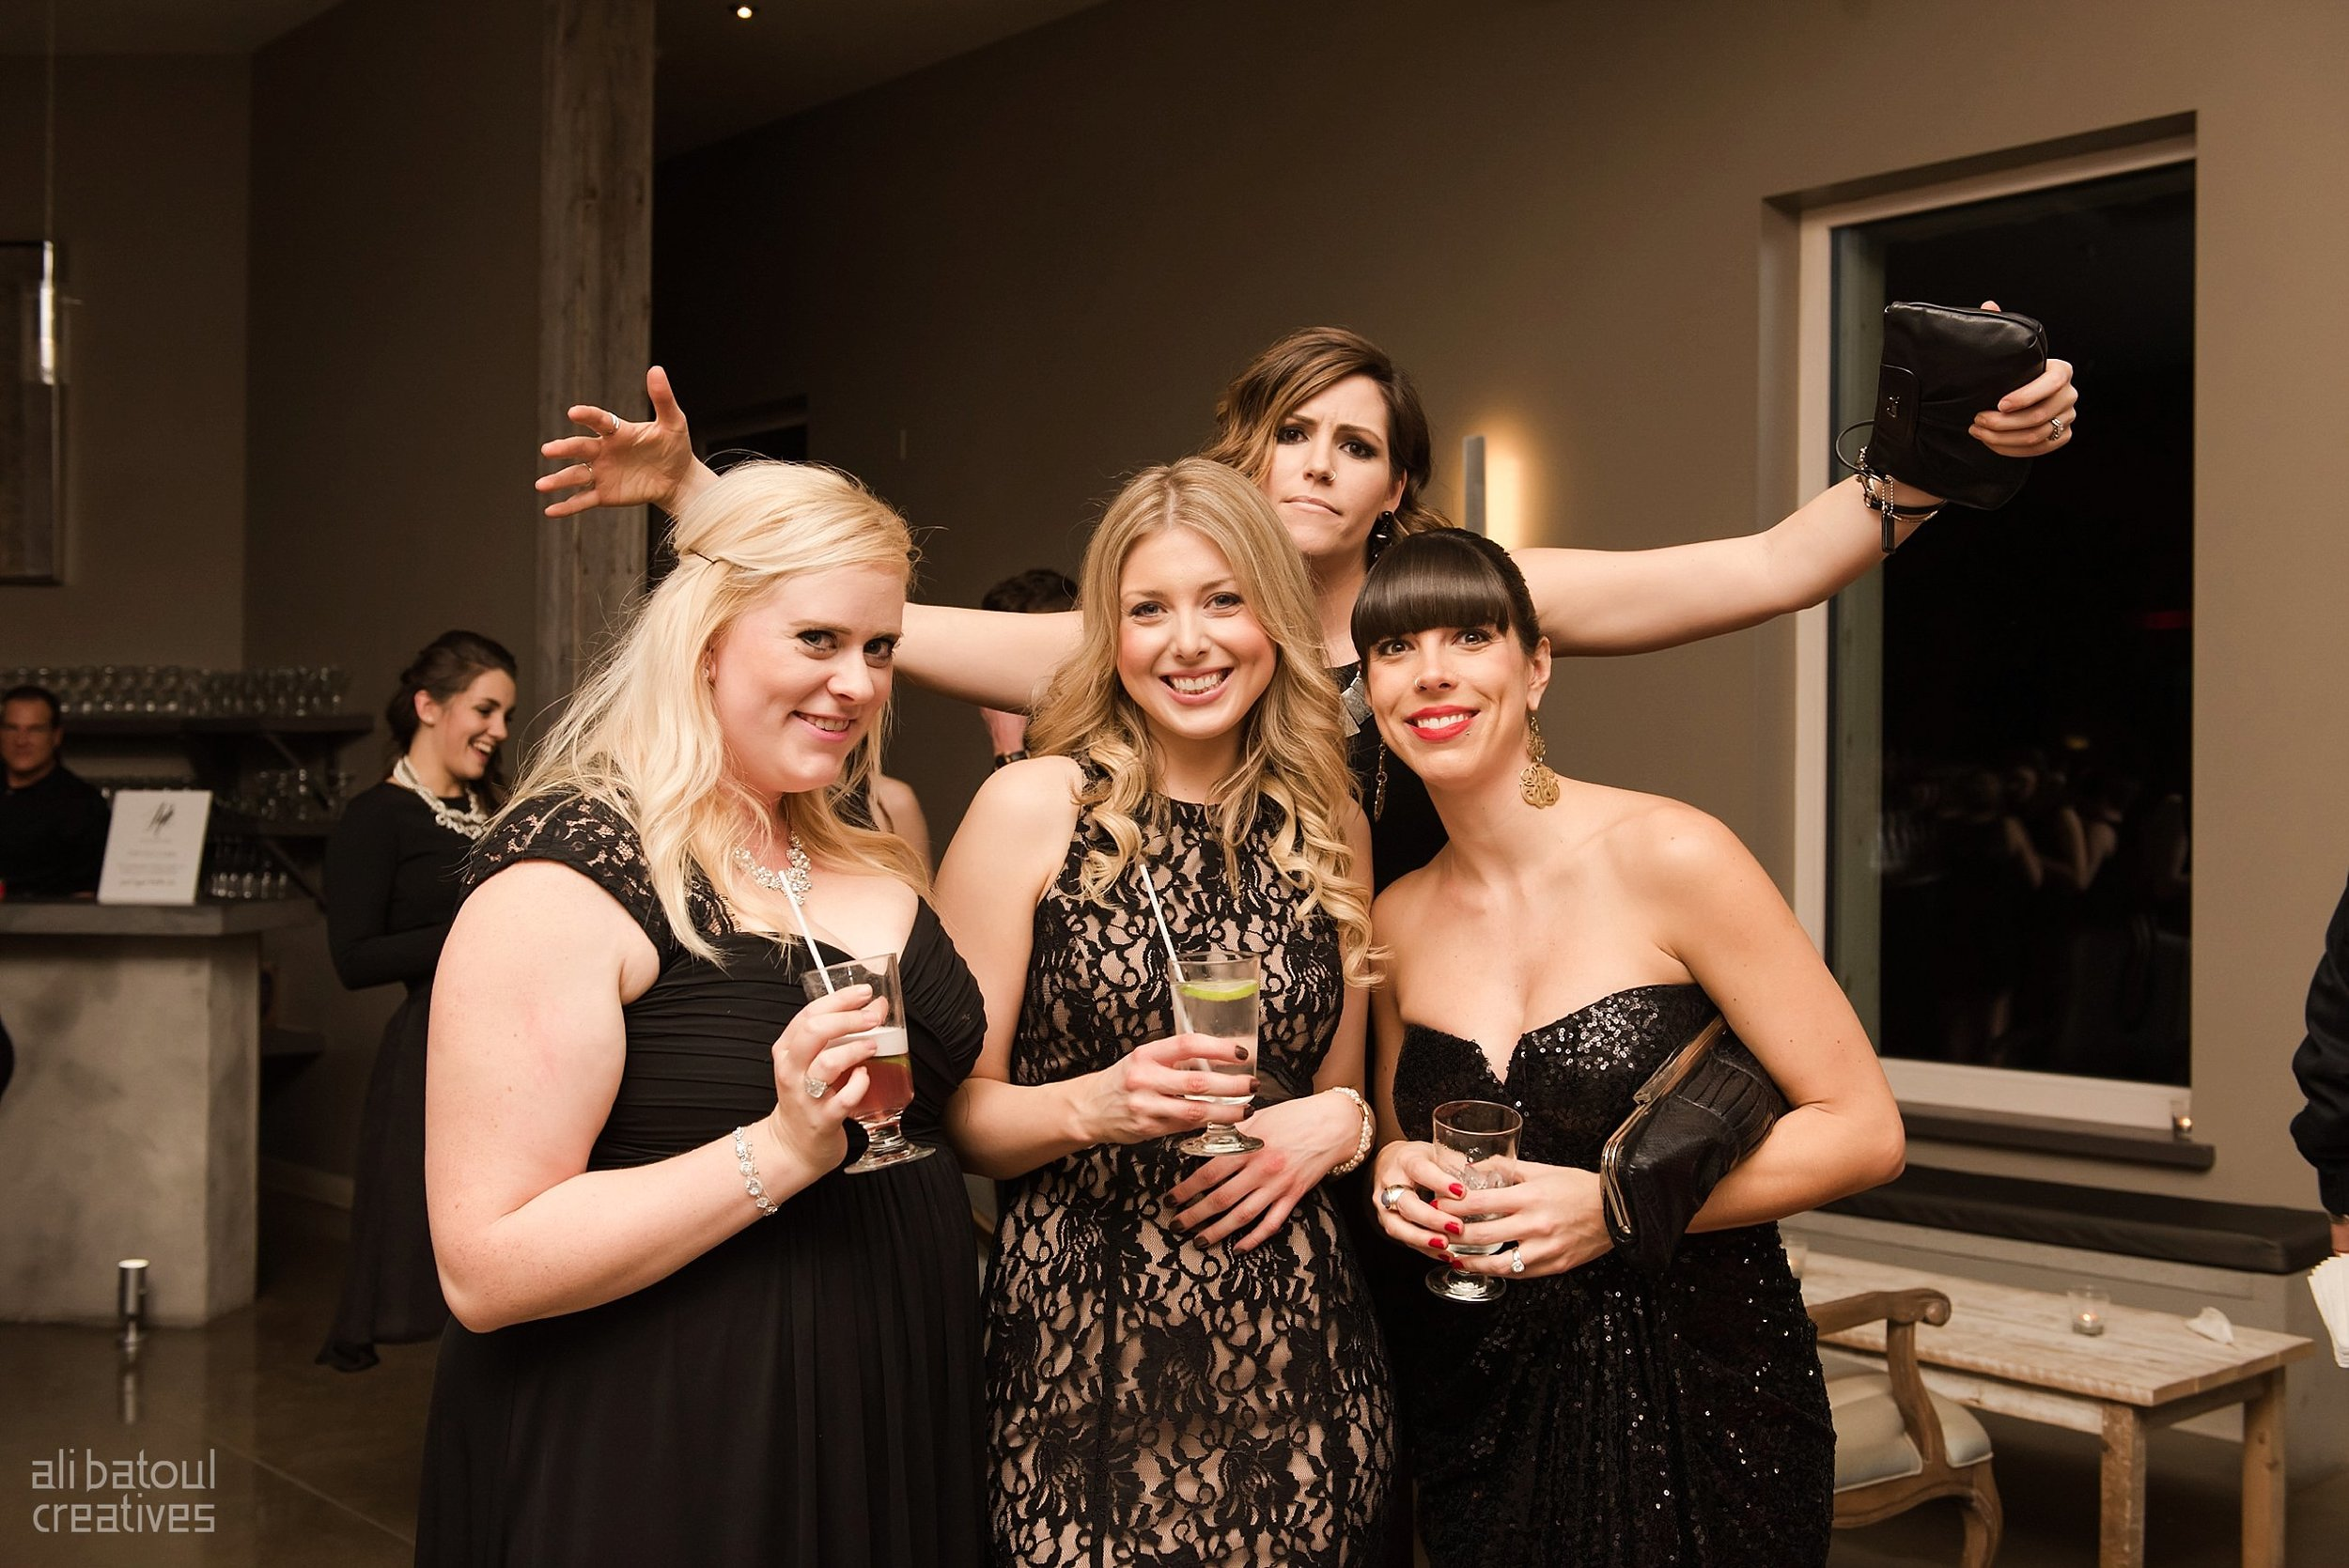 Laura Kelly, Sarah Walsh, Brittany Lee, Ashley Notley. An admirable bunch!